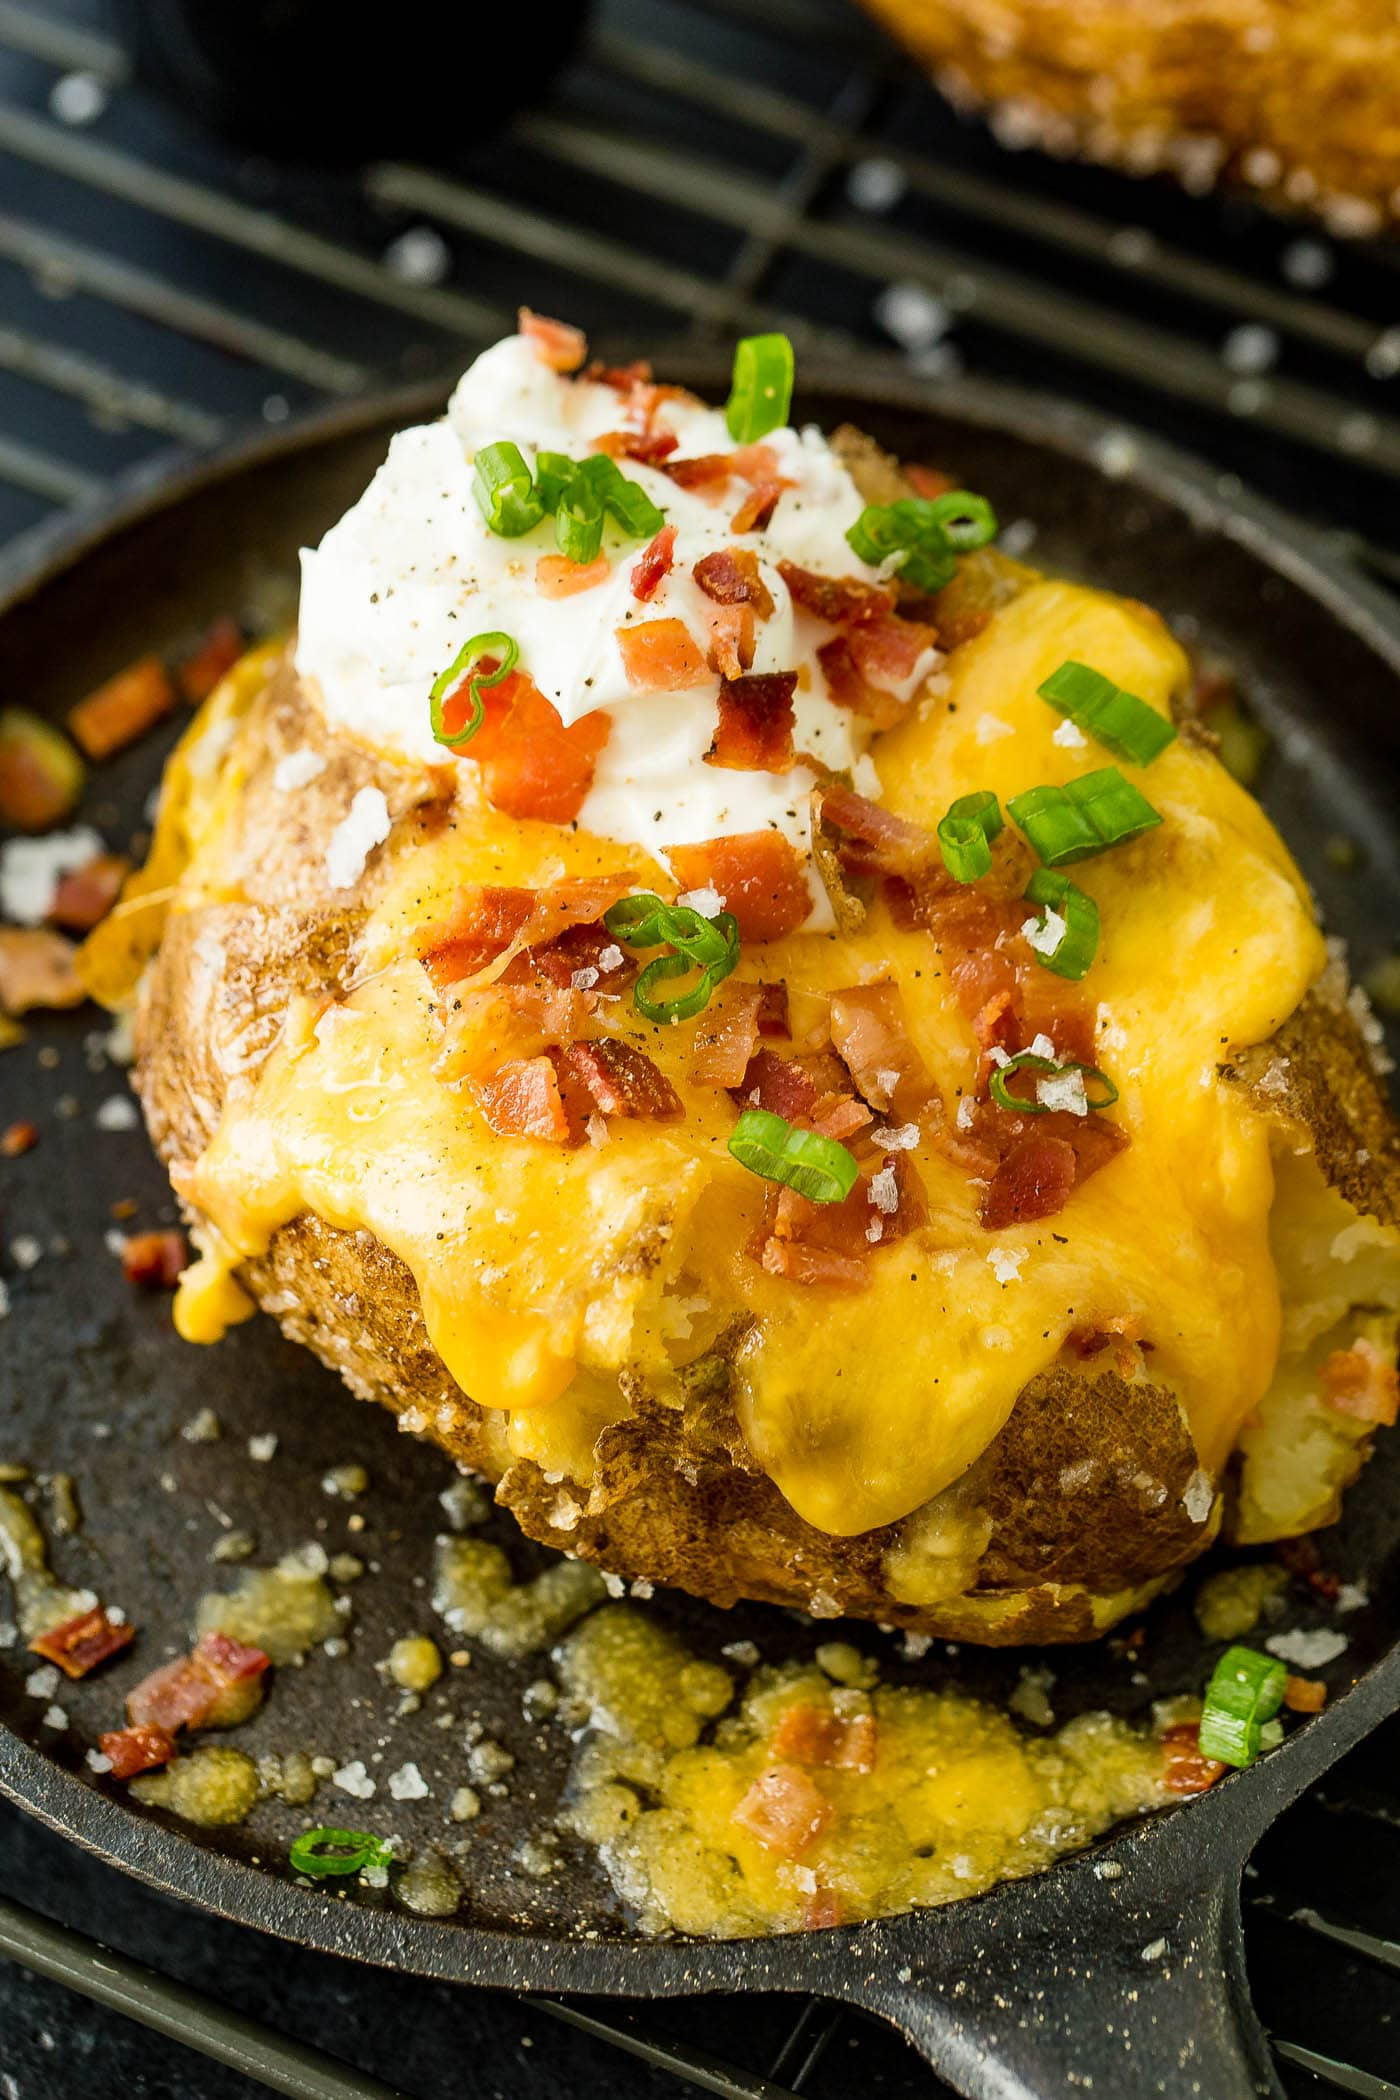 a loaded baked potato with cheese, sour cream, butter, bacon and green onions